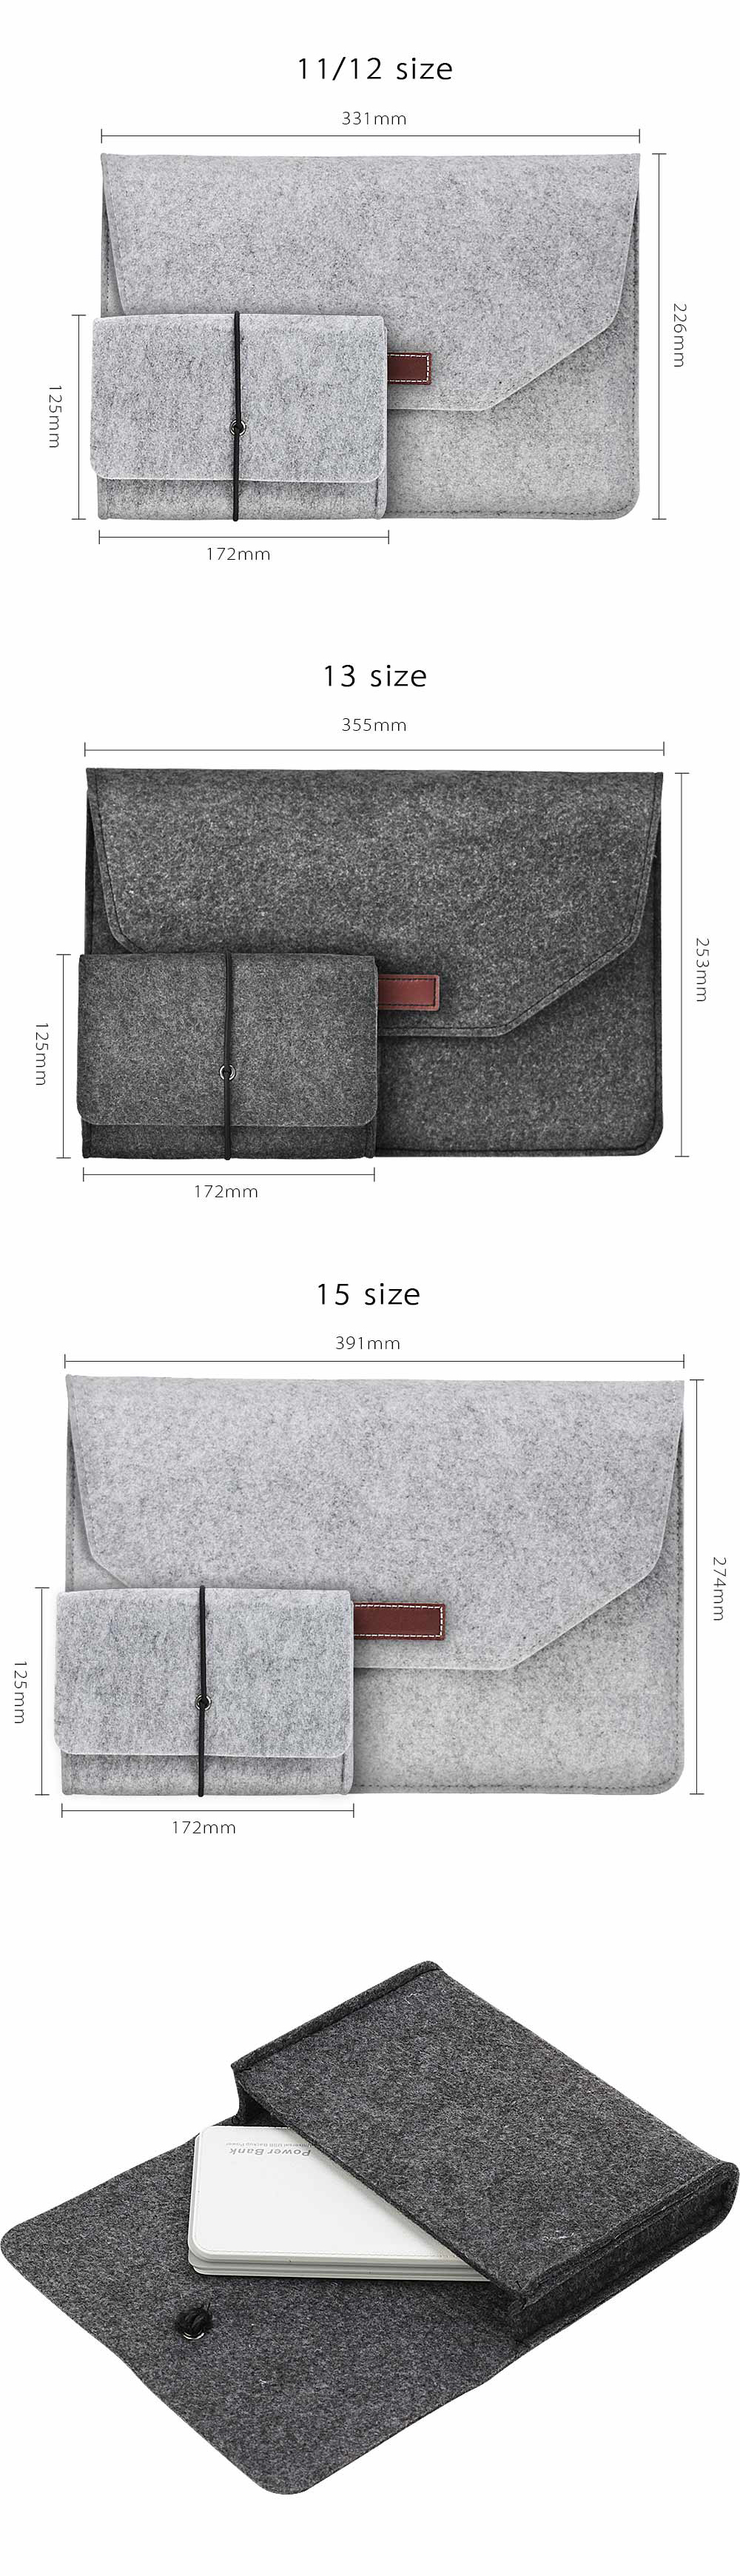 Soft For Macbook Air 13 Retina 13 Laptop Sleeve Wool Flet Case For Macbook Retina Pro 12 13 15 Touch Bar Laptop Case Mouse Bag  (3)